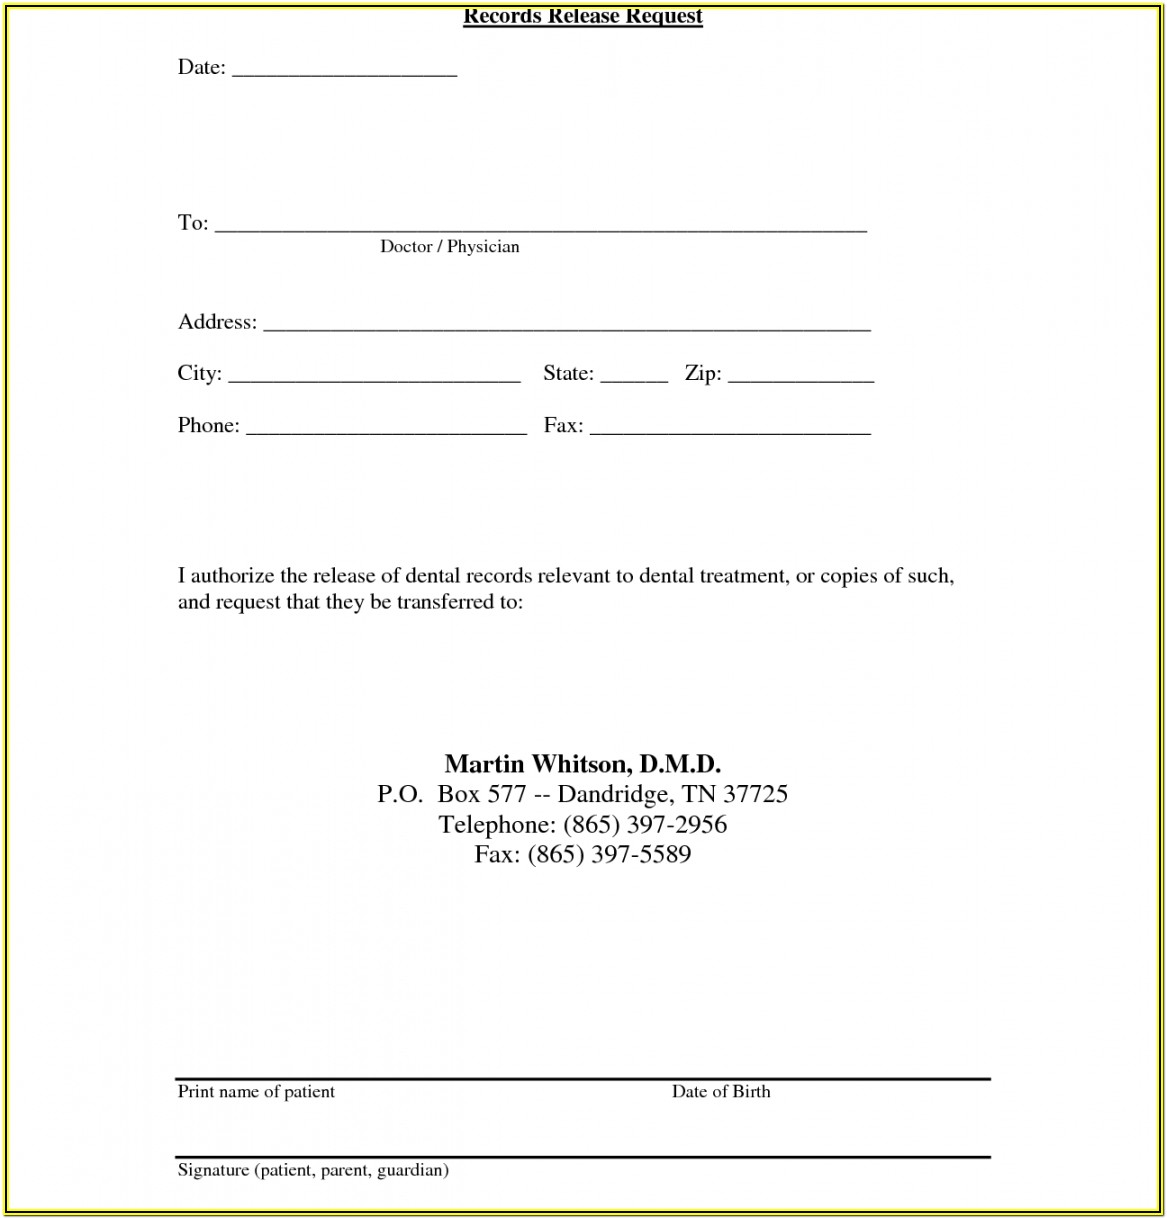 Hipaa Compliant Records Release Form